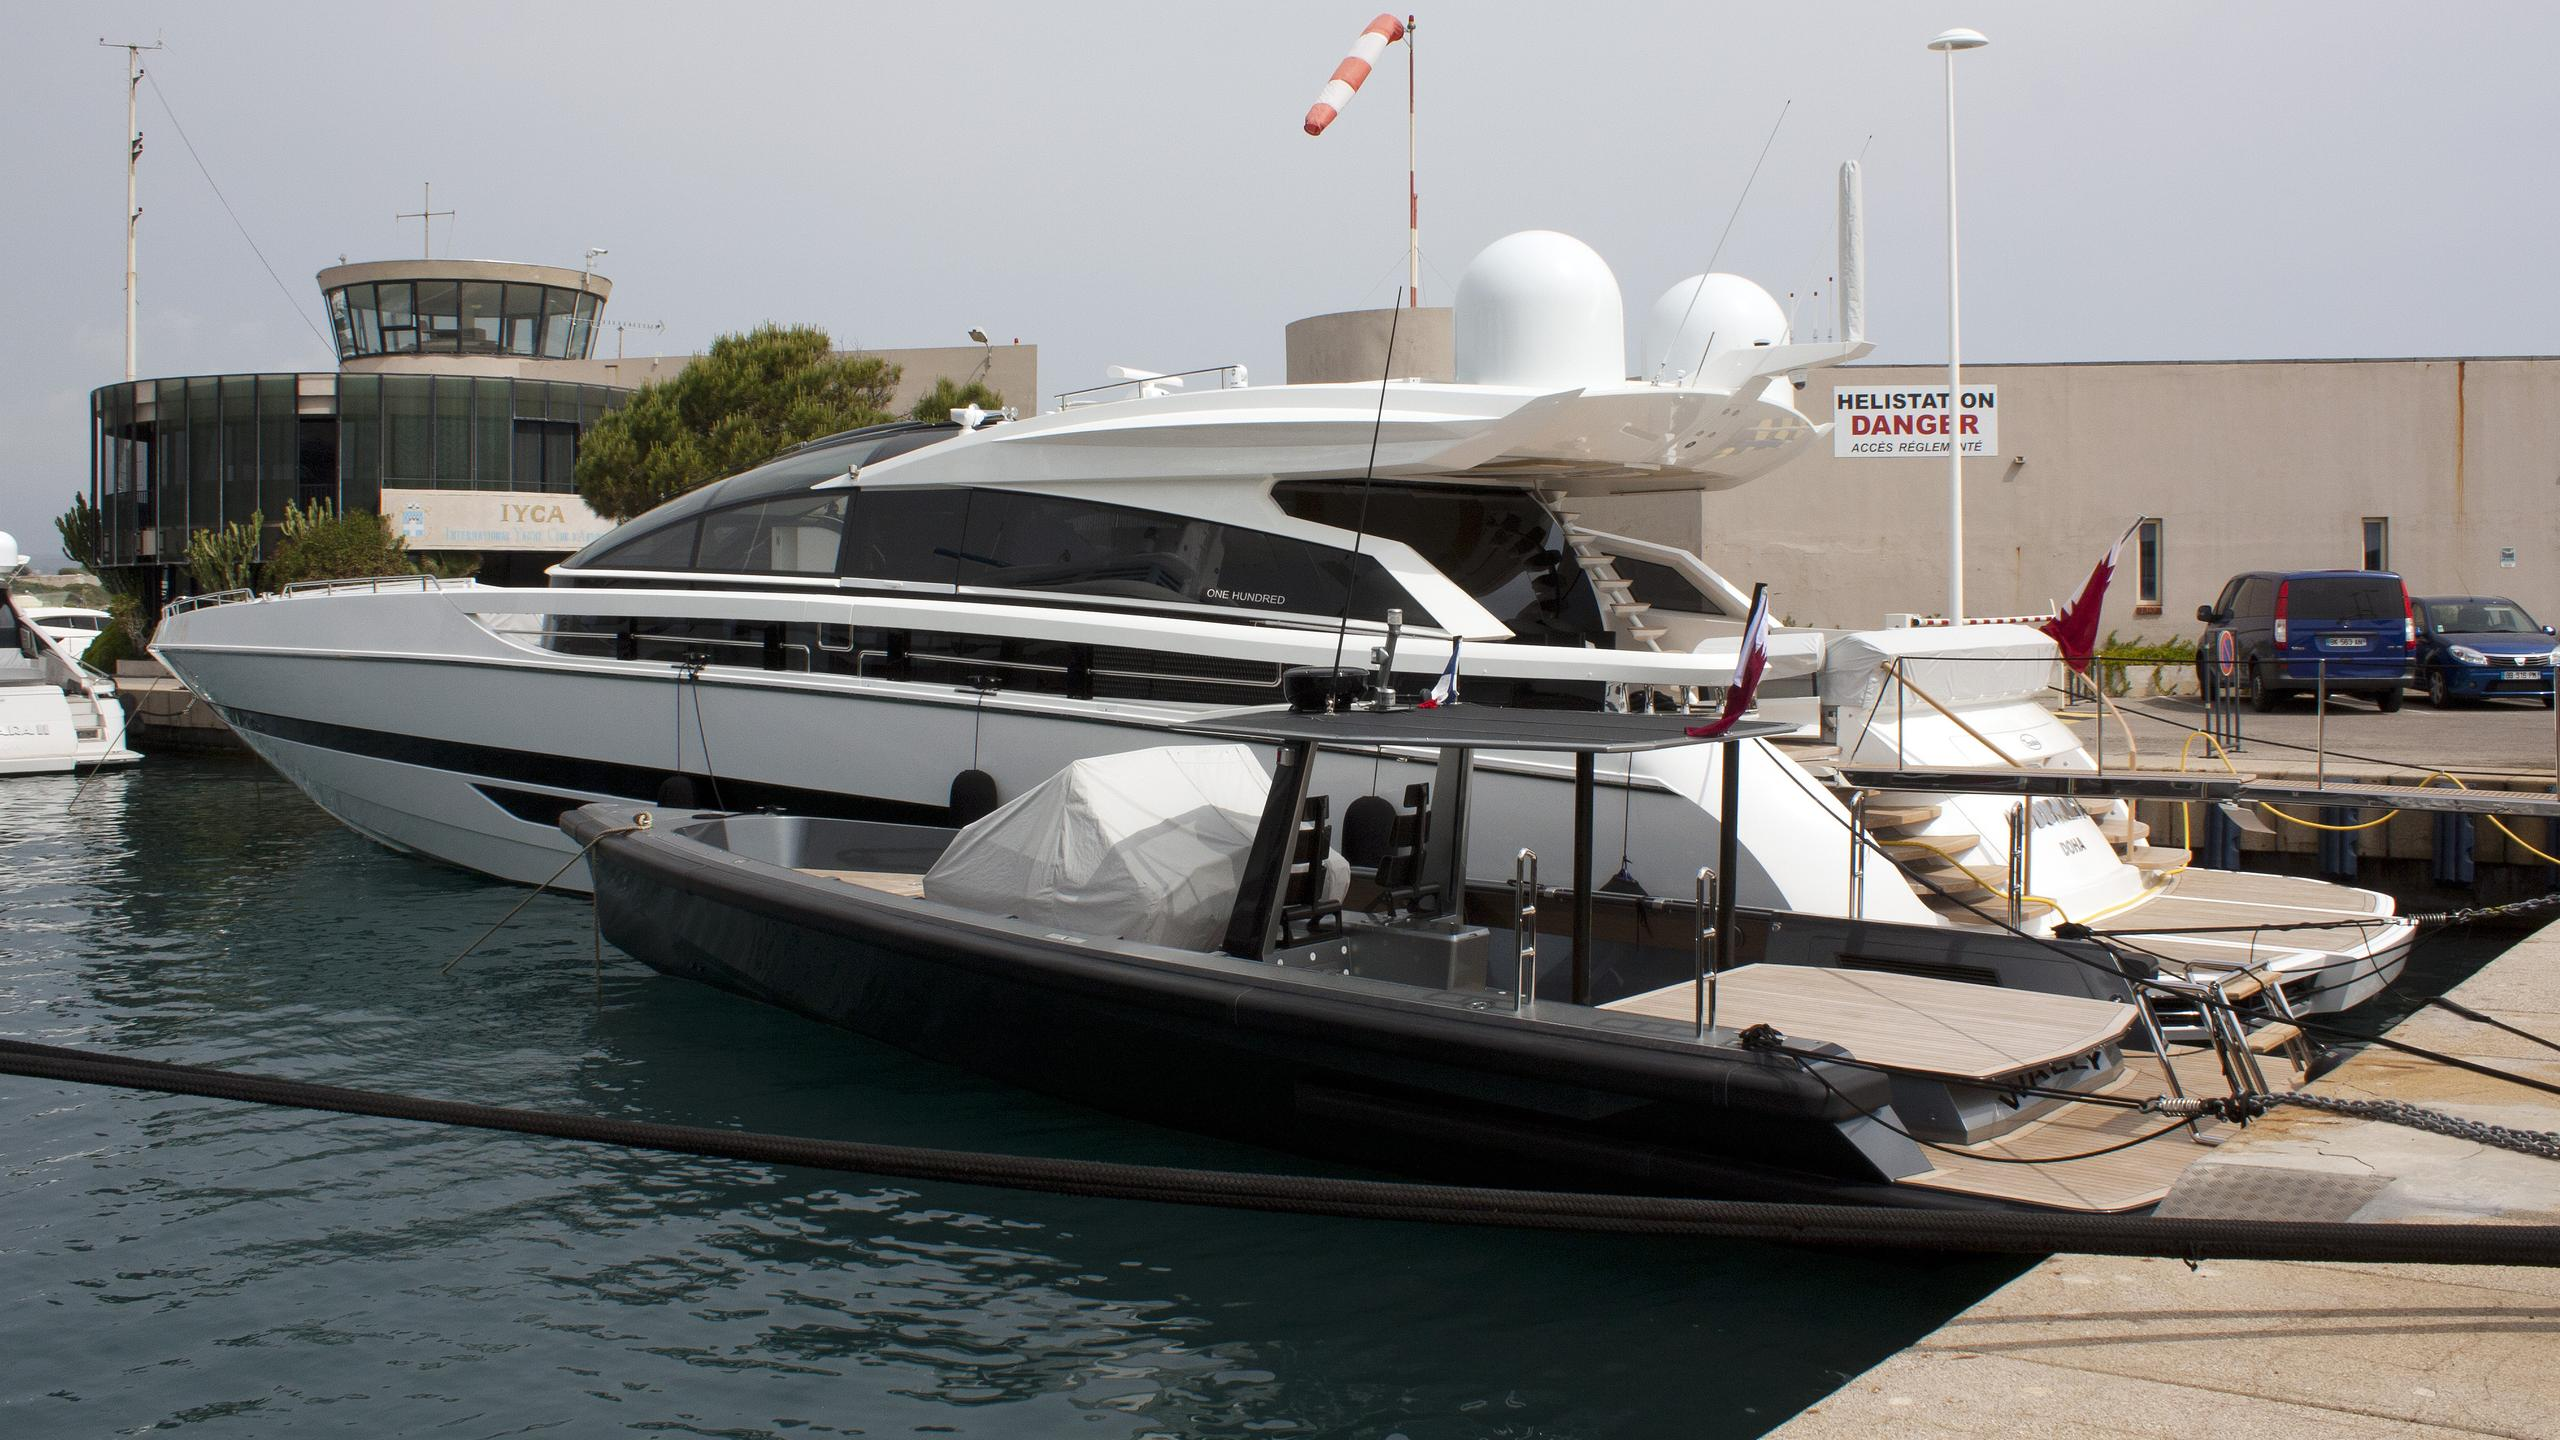 ad-duwaiha-motor-yacht-baia-one-hundred-2015-31m-berth